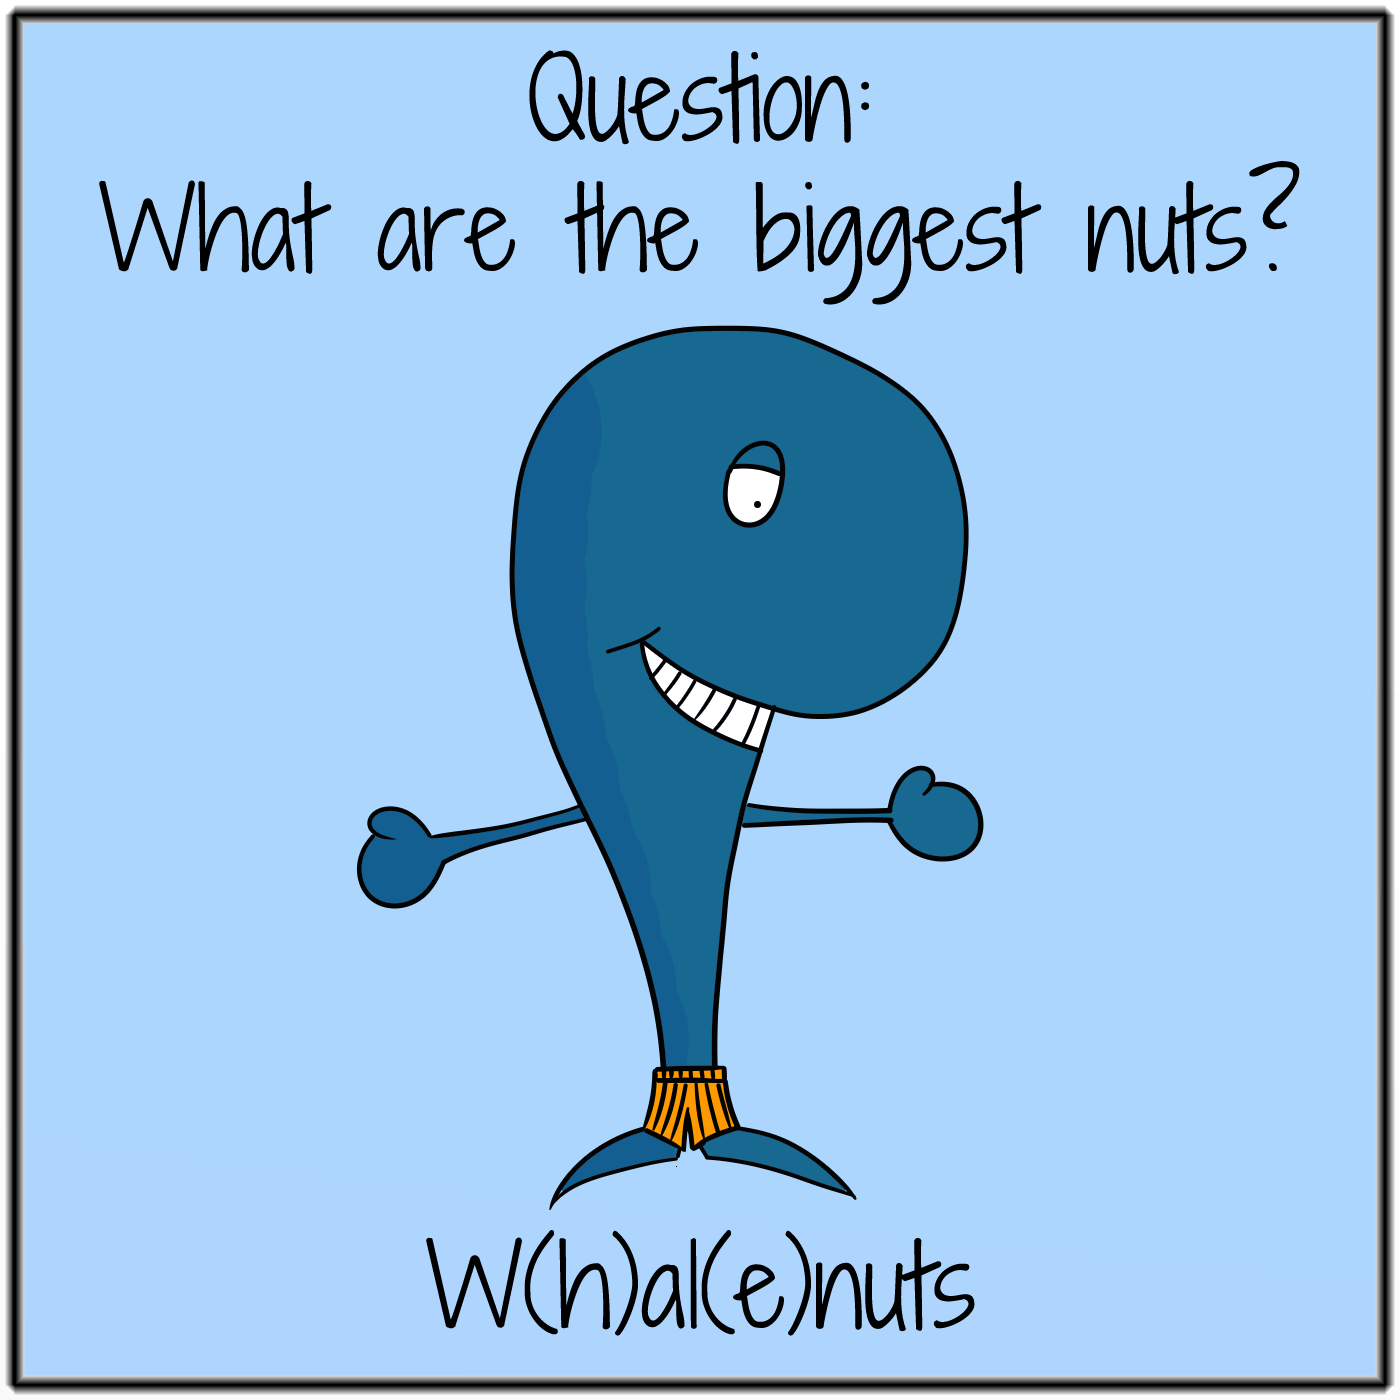 What are the biggest nuts?